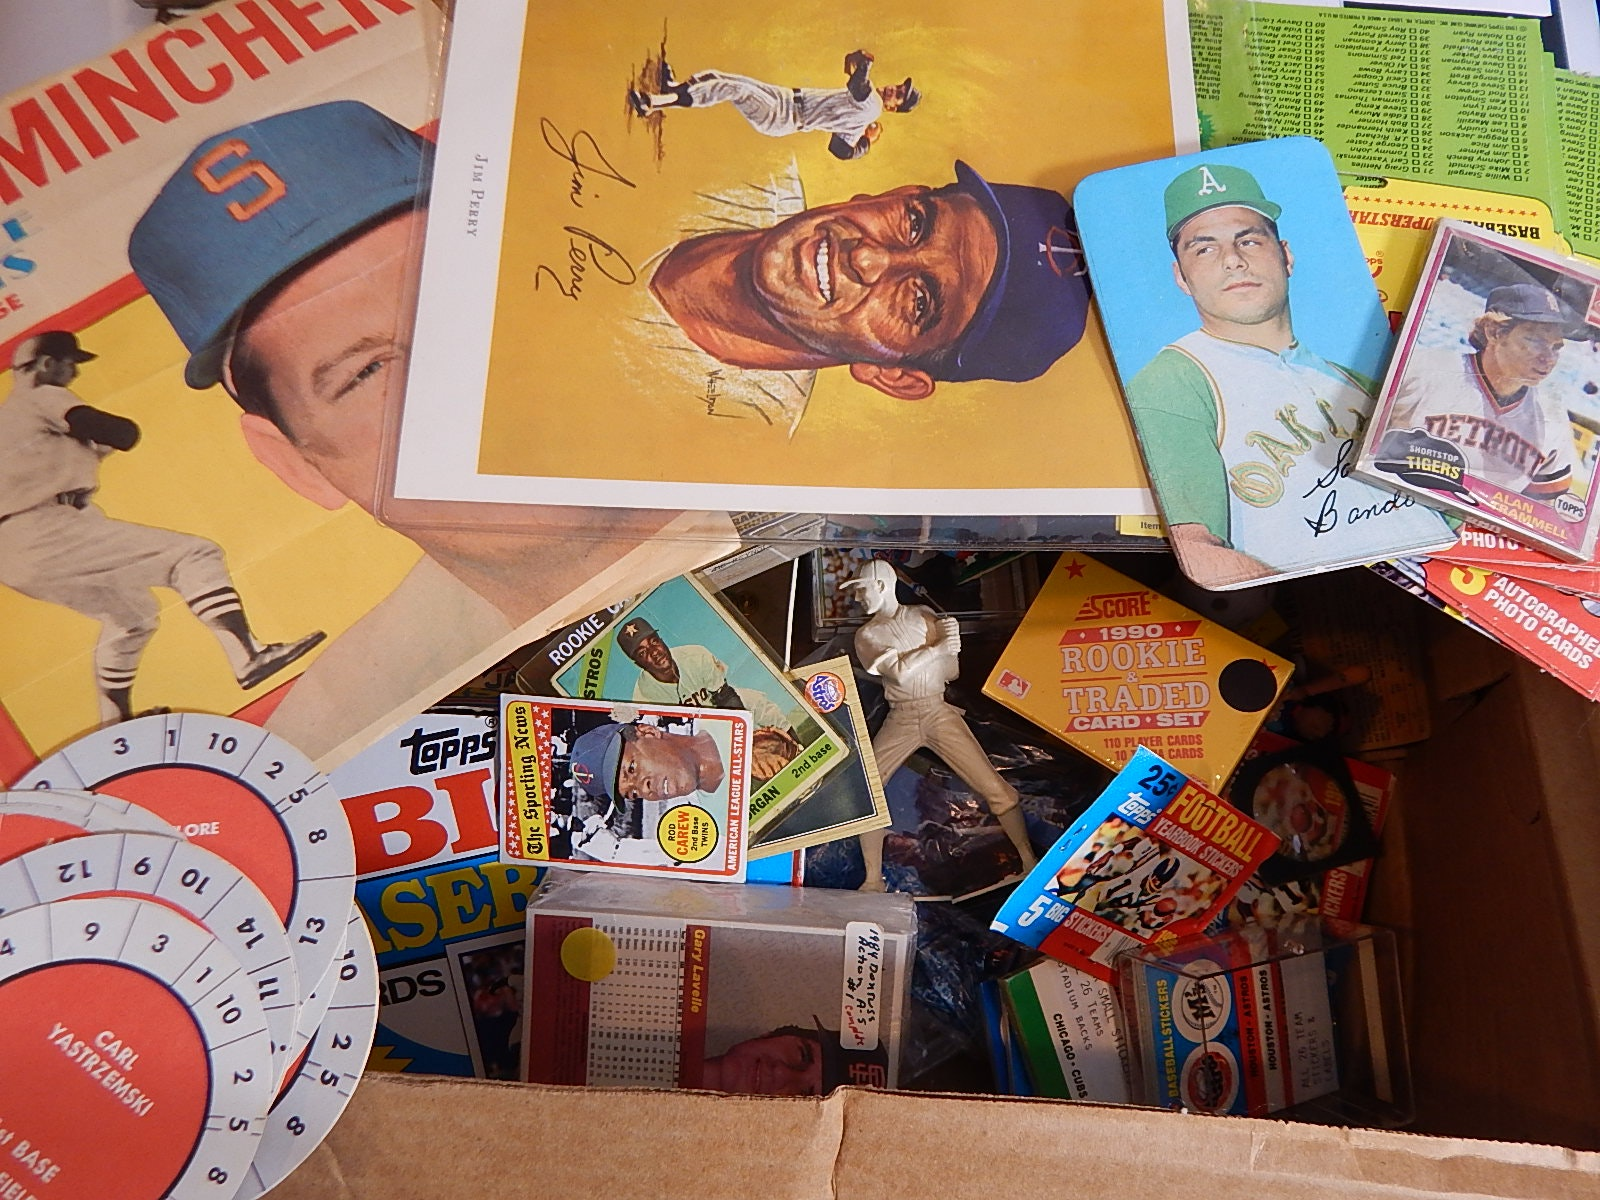 Sports Related Cards and Memorabilia Collection